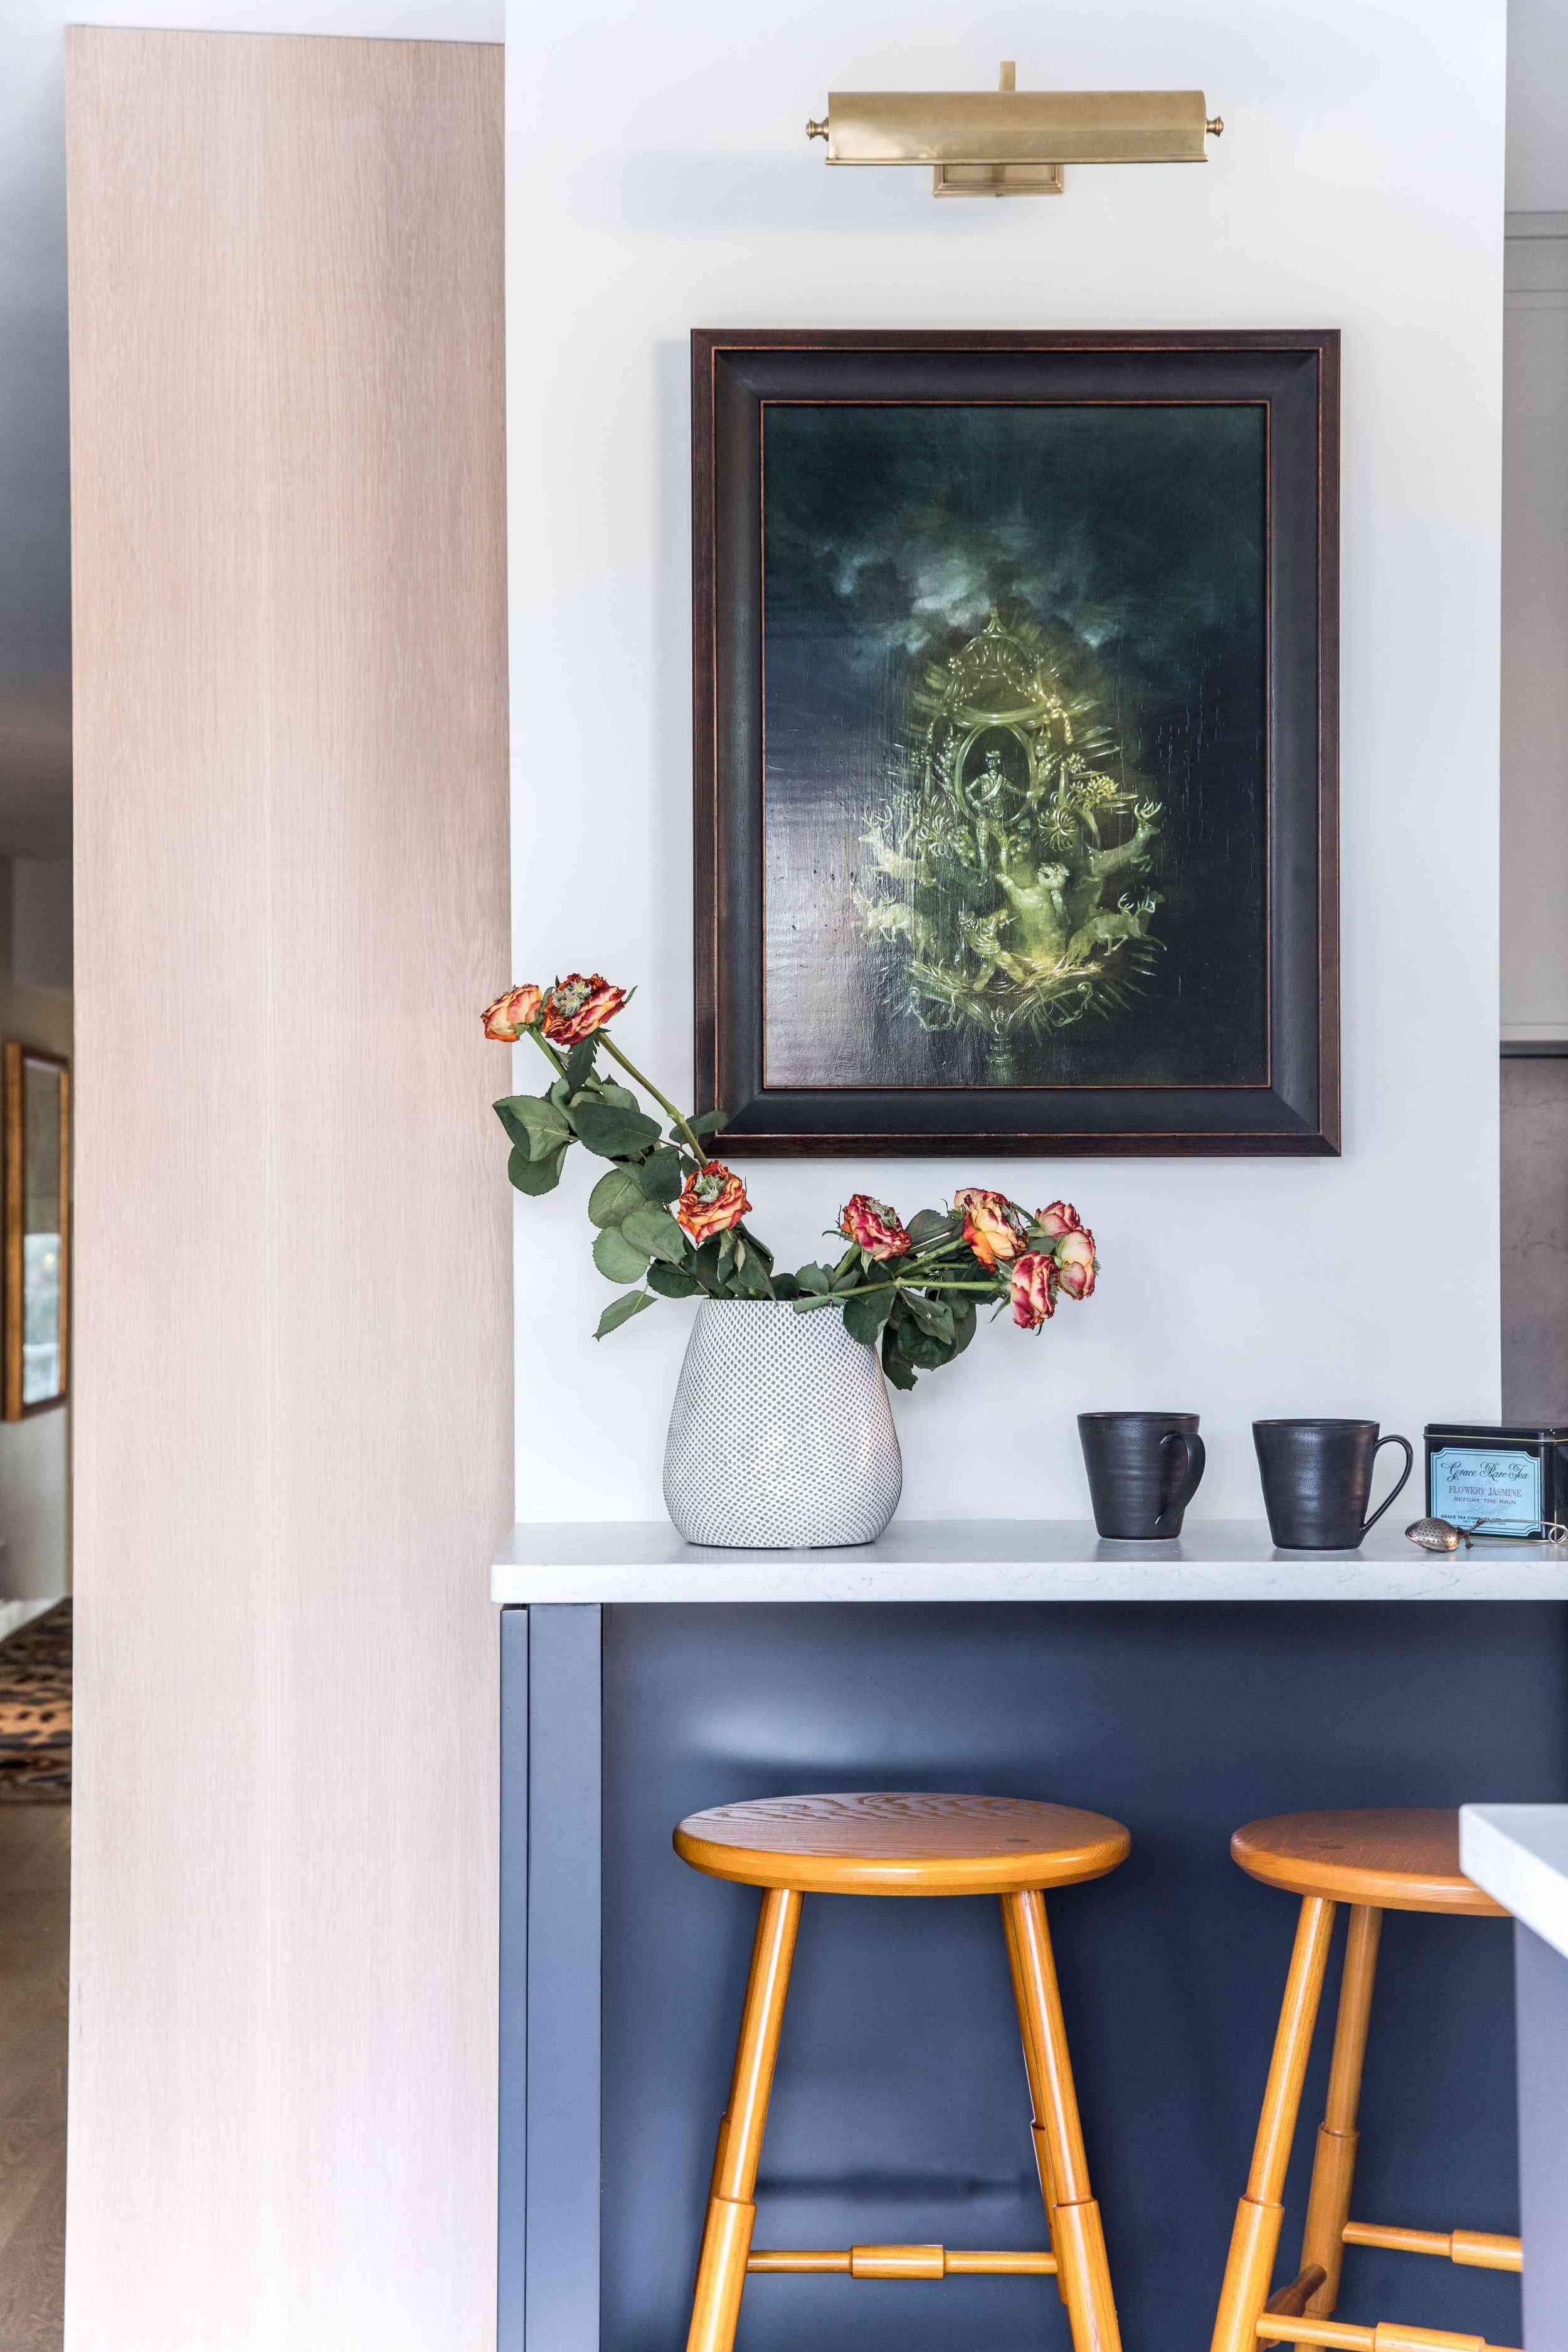 A rustic kitchen with a painting, flowers, and several wooden stools